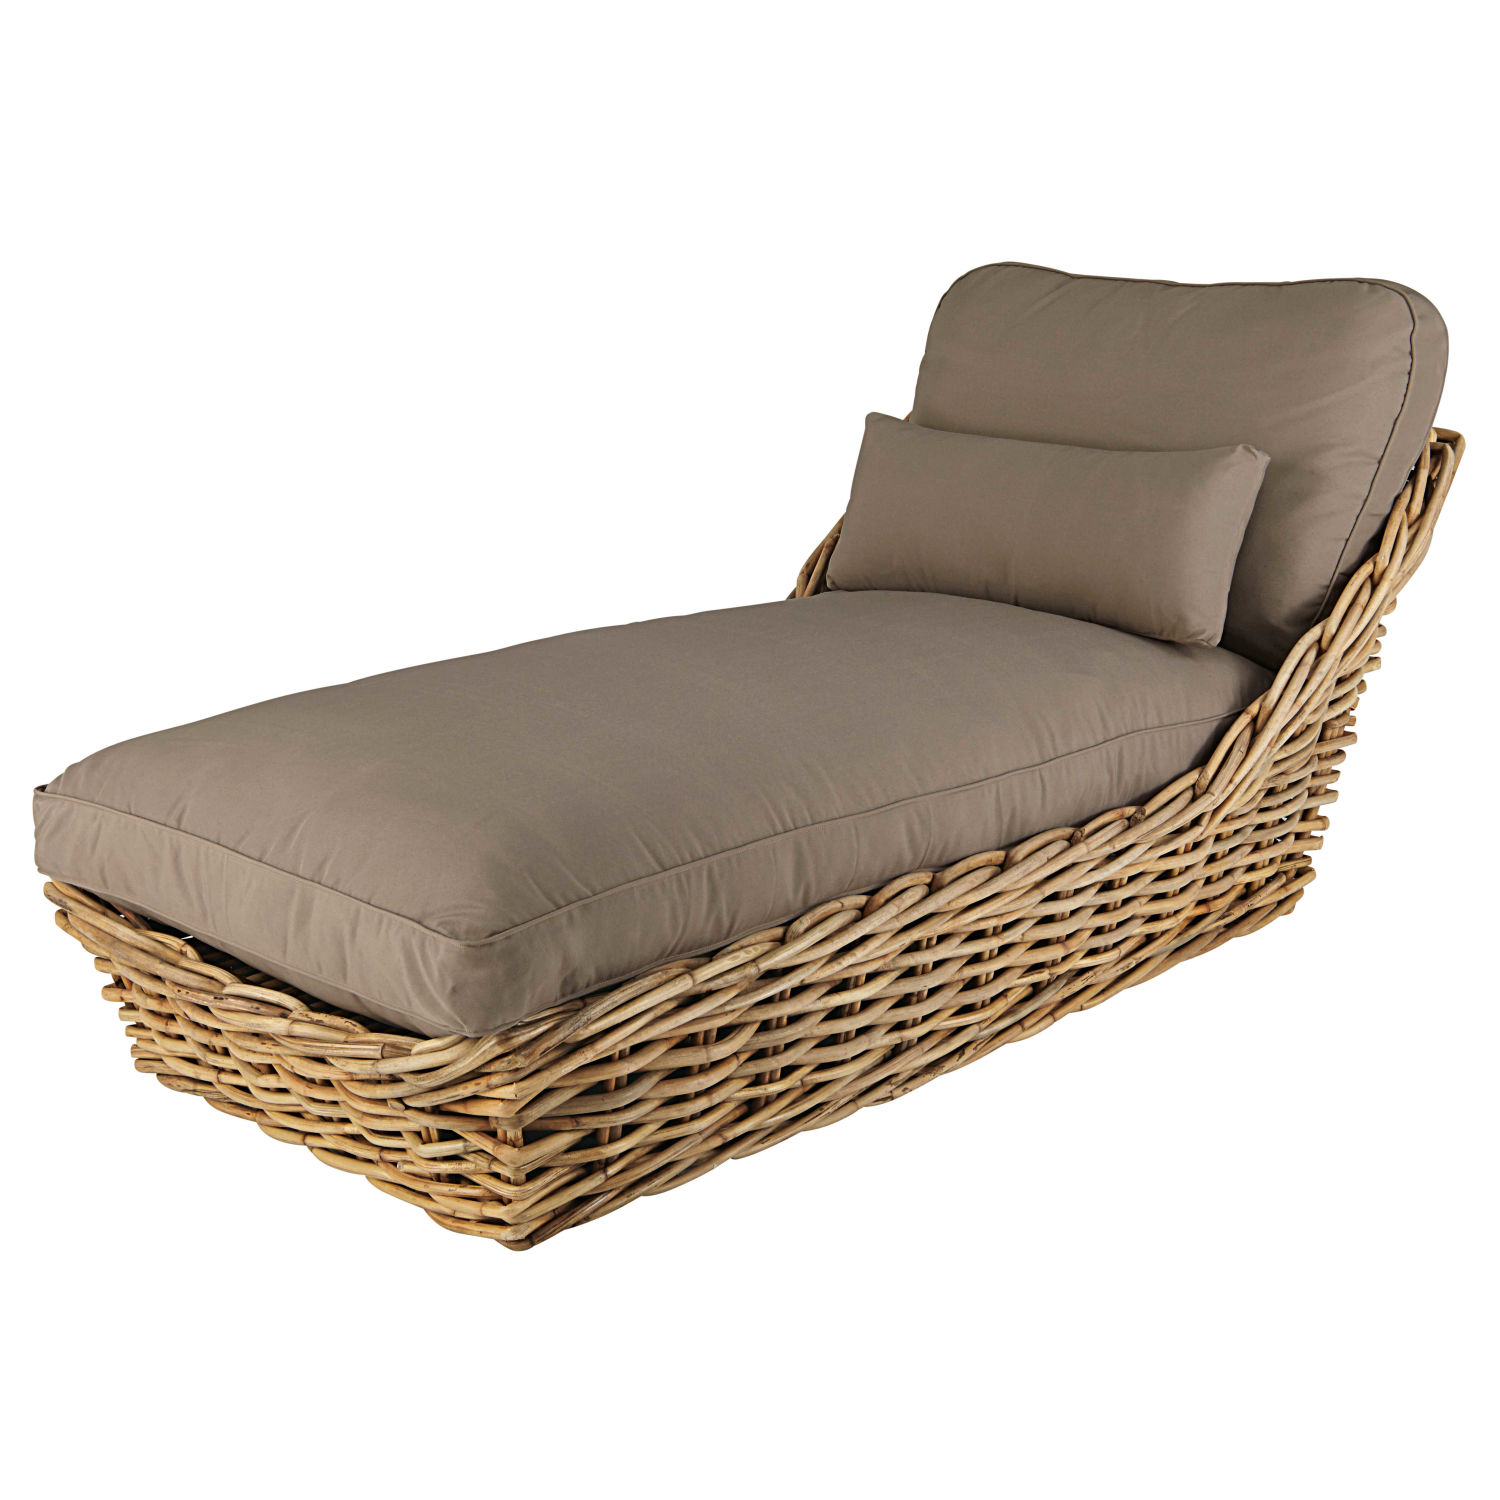 garten chaiselongue aus rattan mit taupefarbenen kissen maisons du monde. Black Bedroom Furniture Sets. Home Design Ideas